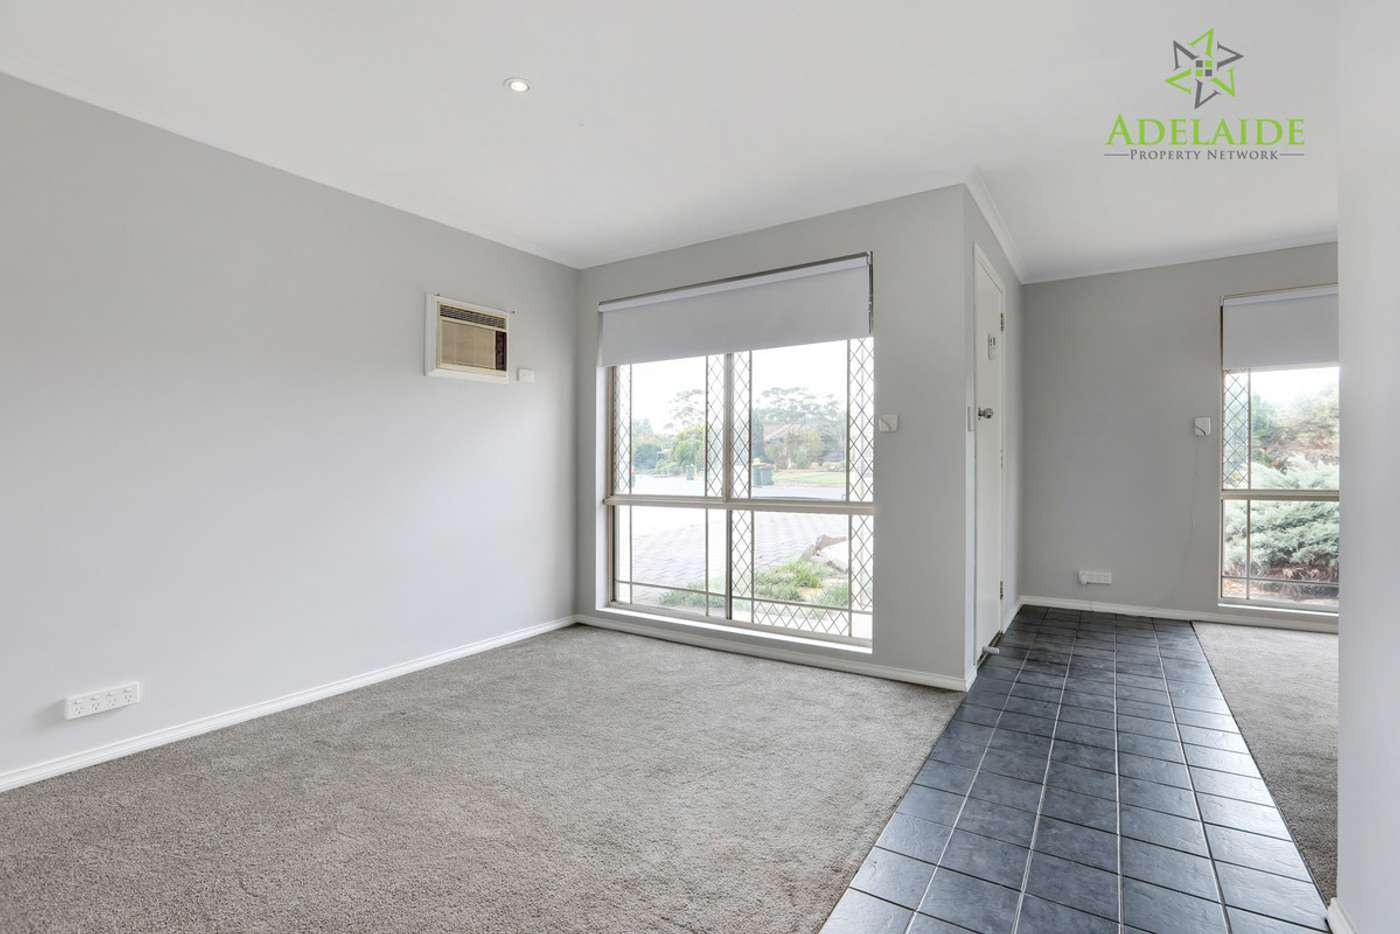 Sixth view of Homely house listing, 34 Browne Circuit, Craigmore SA 5114